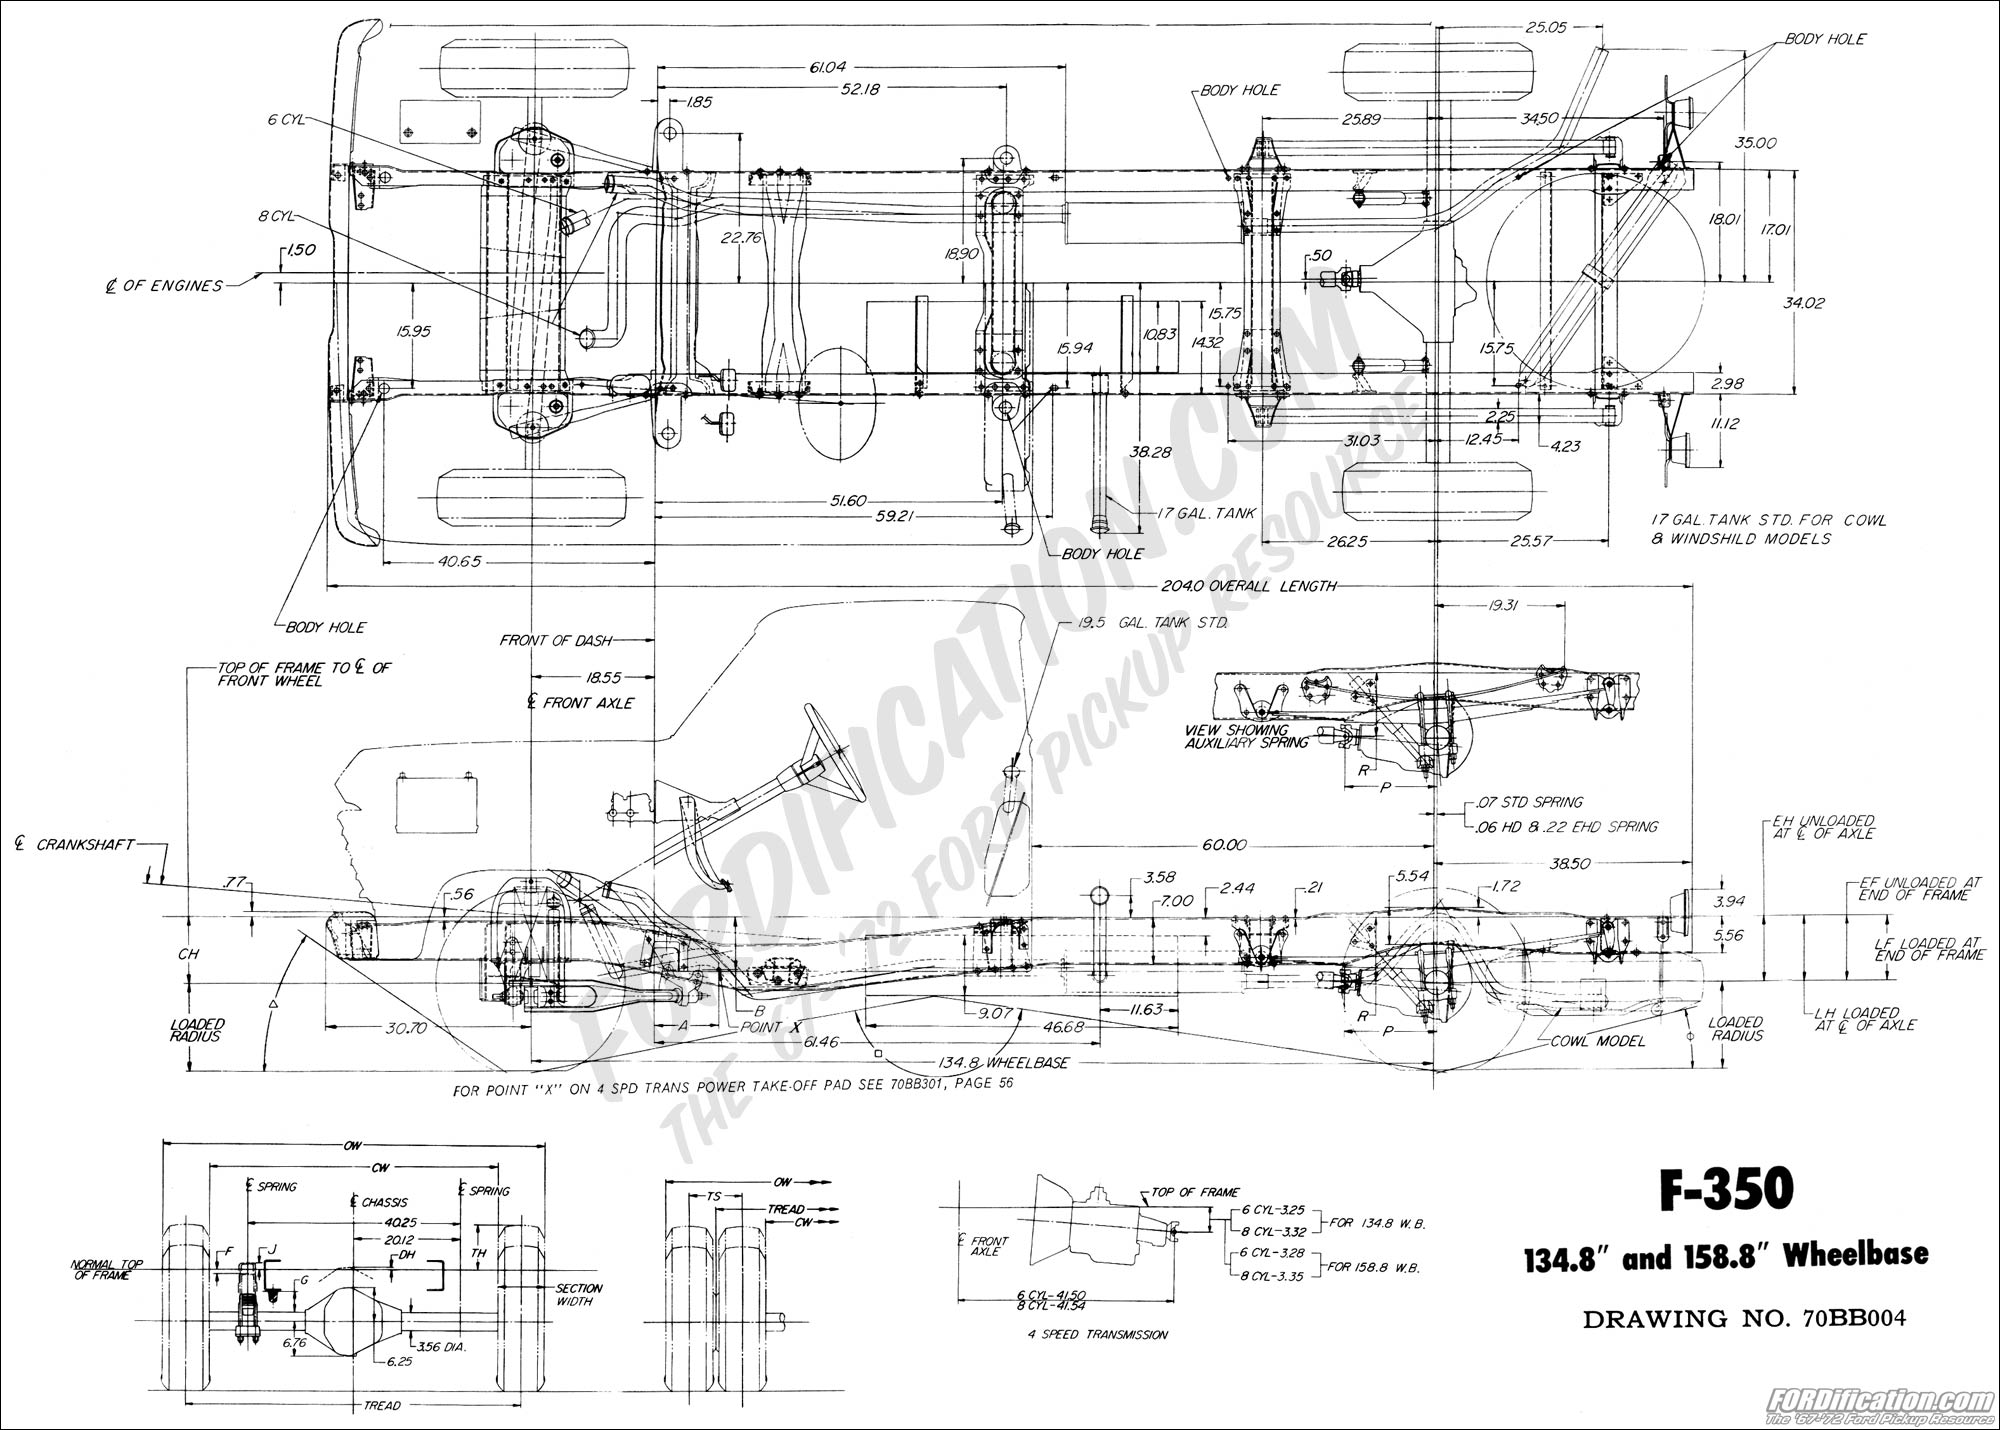 Corvette Brake Line Brake Master Cylinder Proportioning Valve Rear With Power Brakes Steel 1970 1973 together with 504825 Search Transmission Pan Fill Tube besides 1985 Chevy C10 Fuse Box additionally Truck gauges as well Chevy C10 Fuse Box Diagram. on 1965 chevy truck